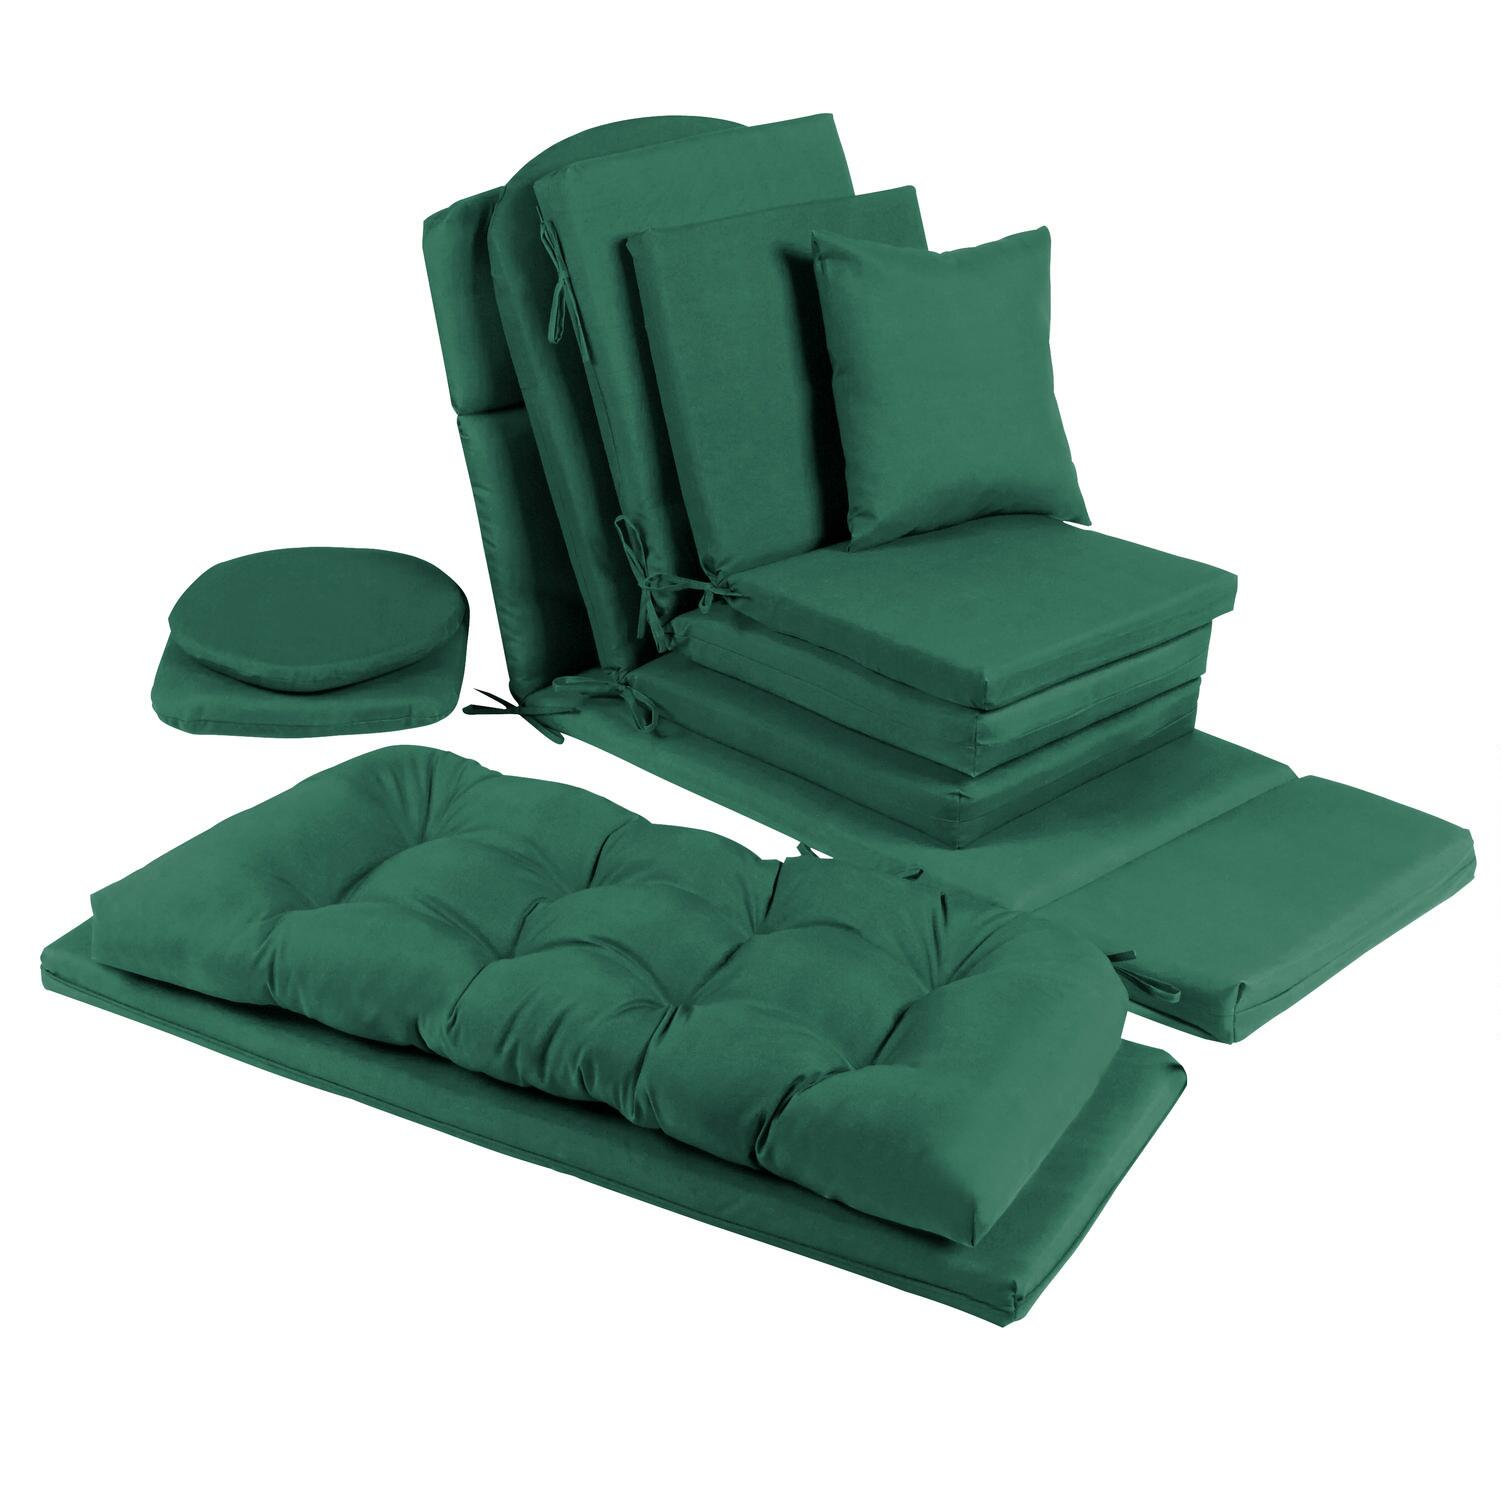 green chair cushions lime green solid hunter green indooroutdoor chair cushions collection